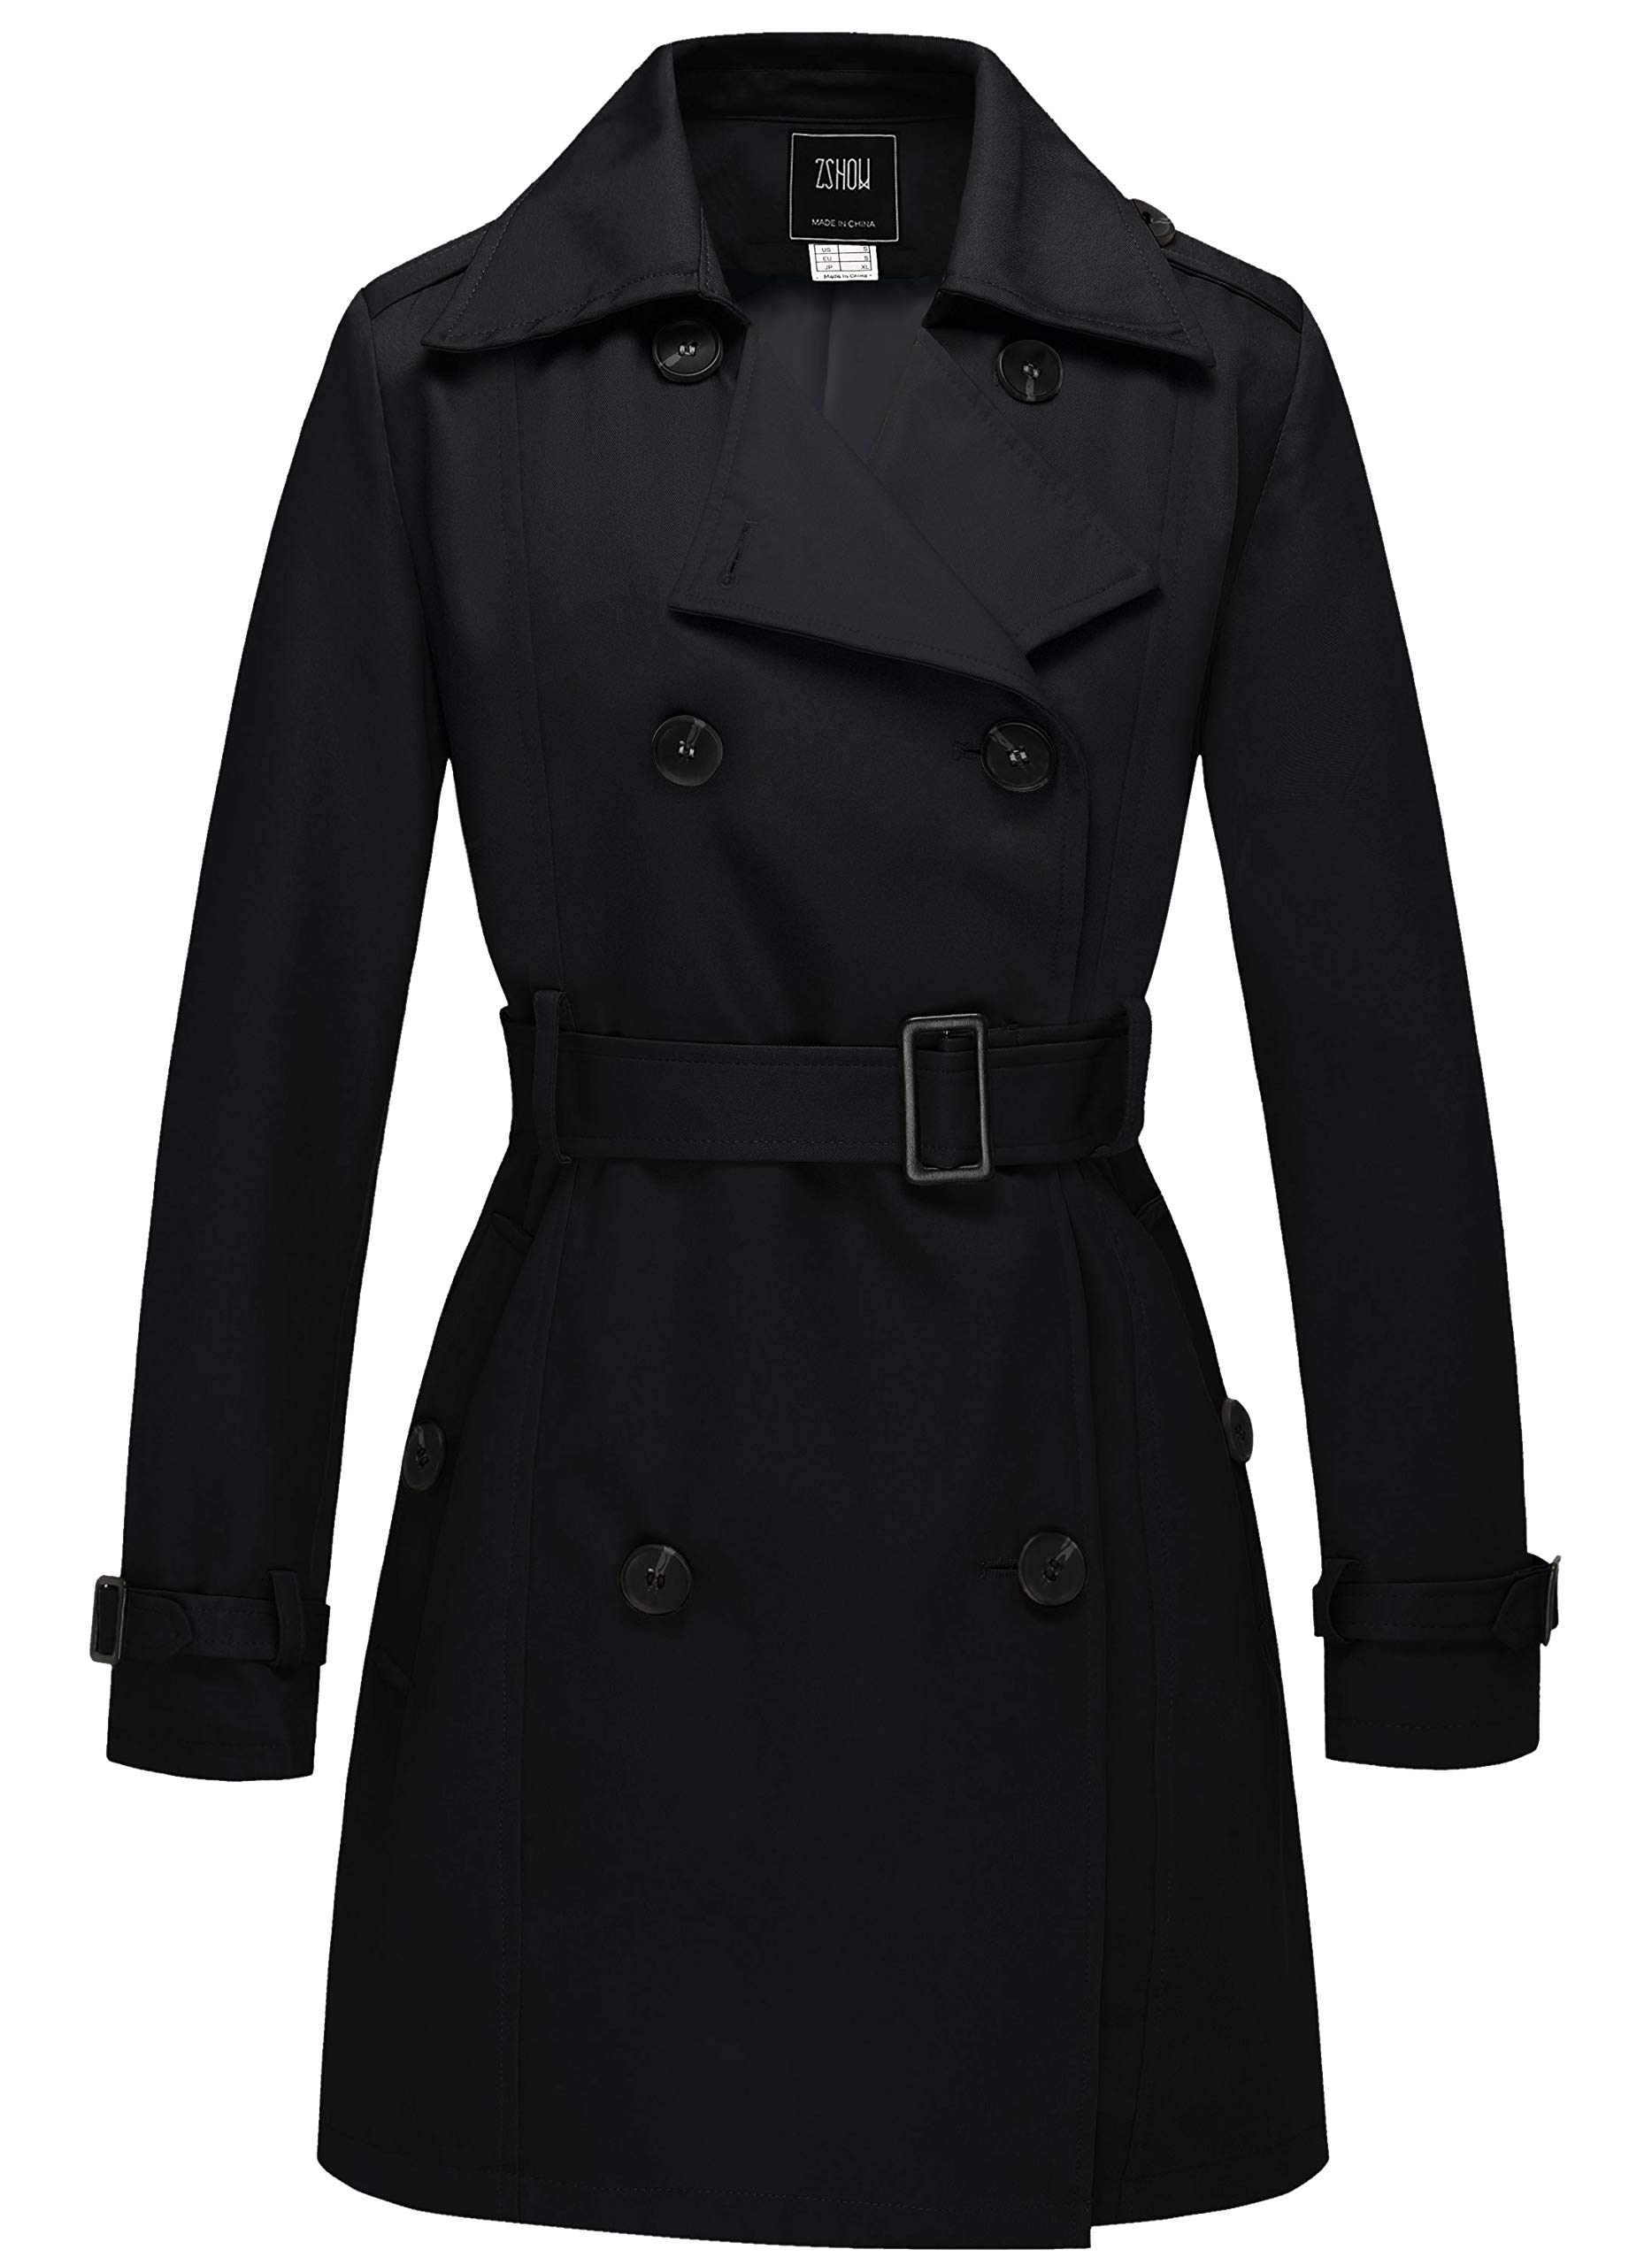 ZSHOW Women's Double Breasted Trench Coat Belted Lapel Overcoat